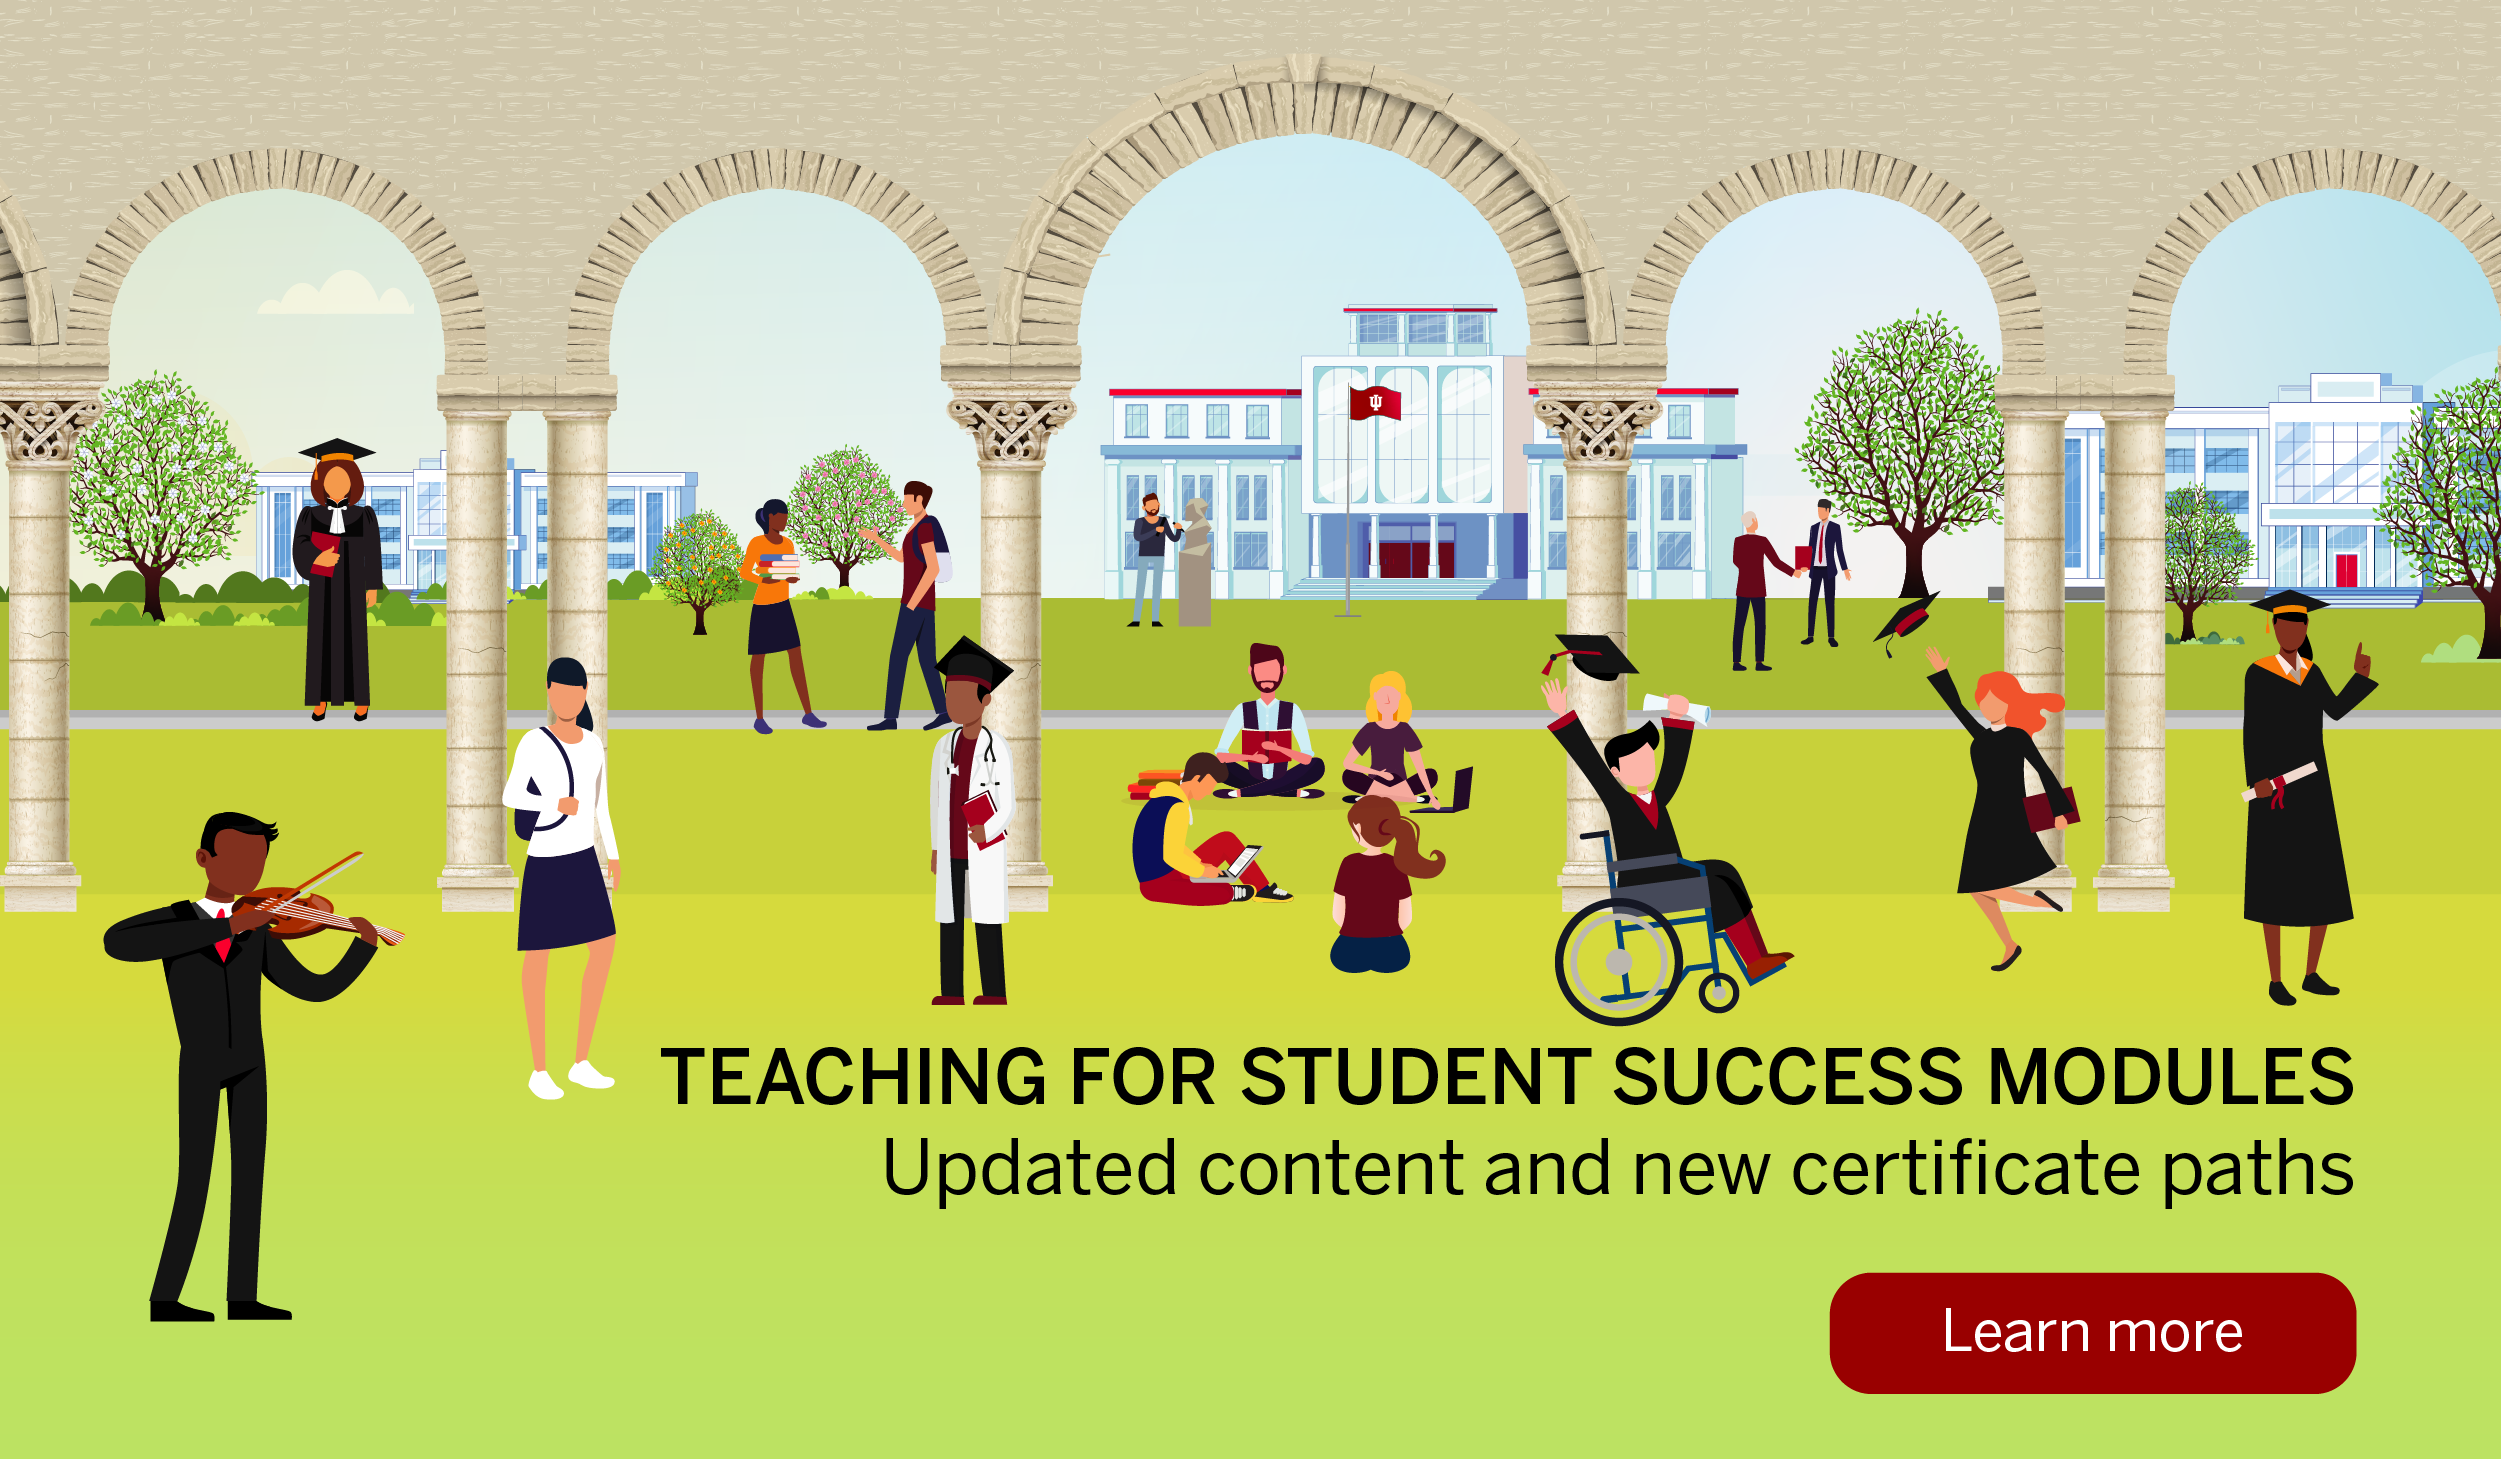 Teaching for student success